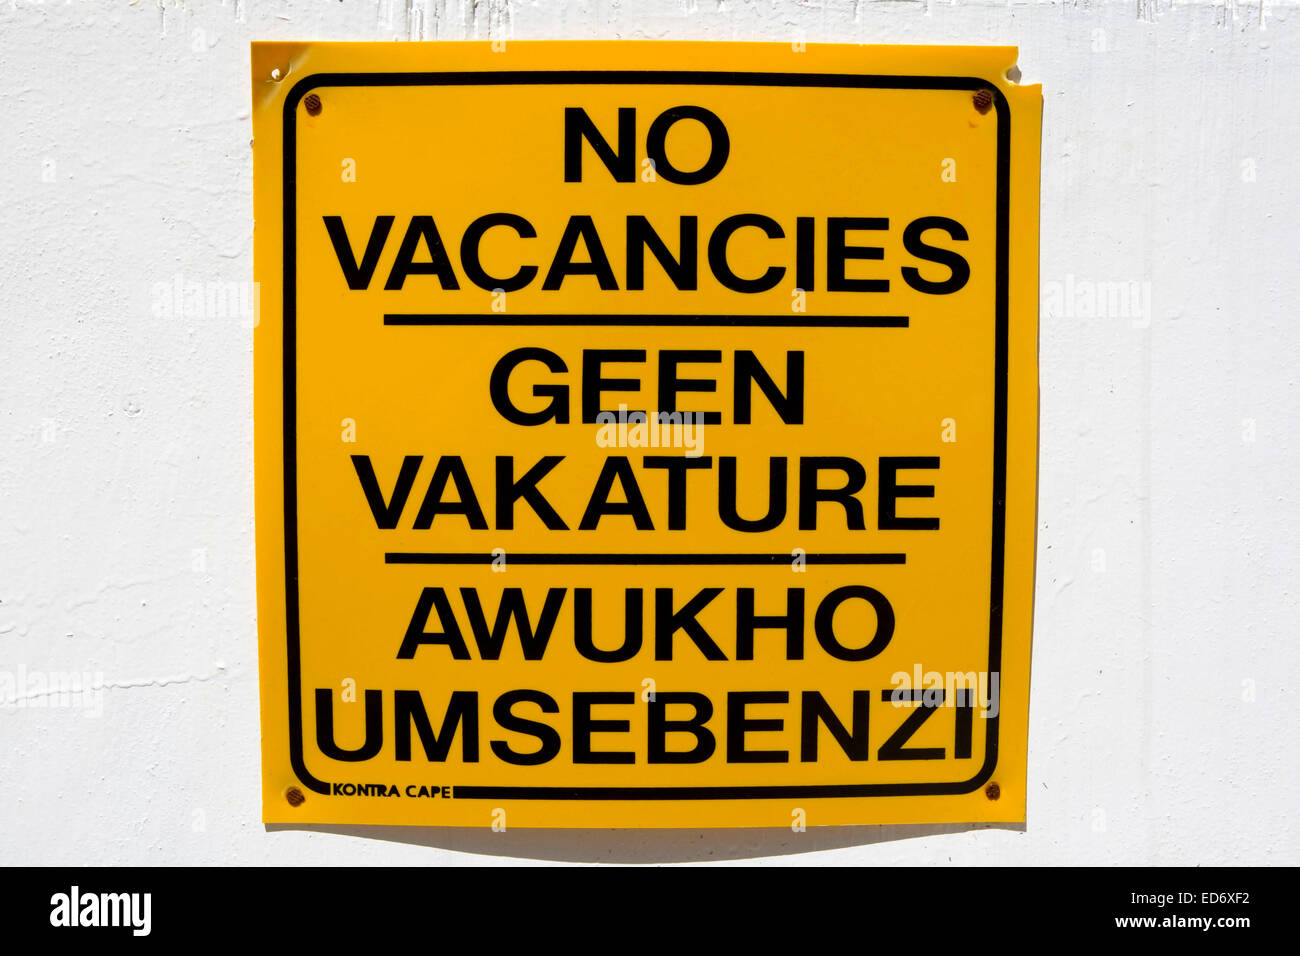 Road sign in Afrikaans, english and zulu languages, Cape Town - Stock Image